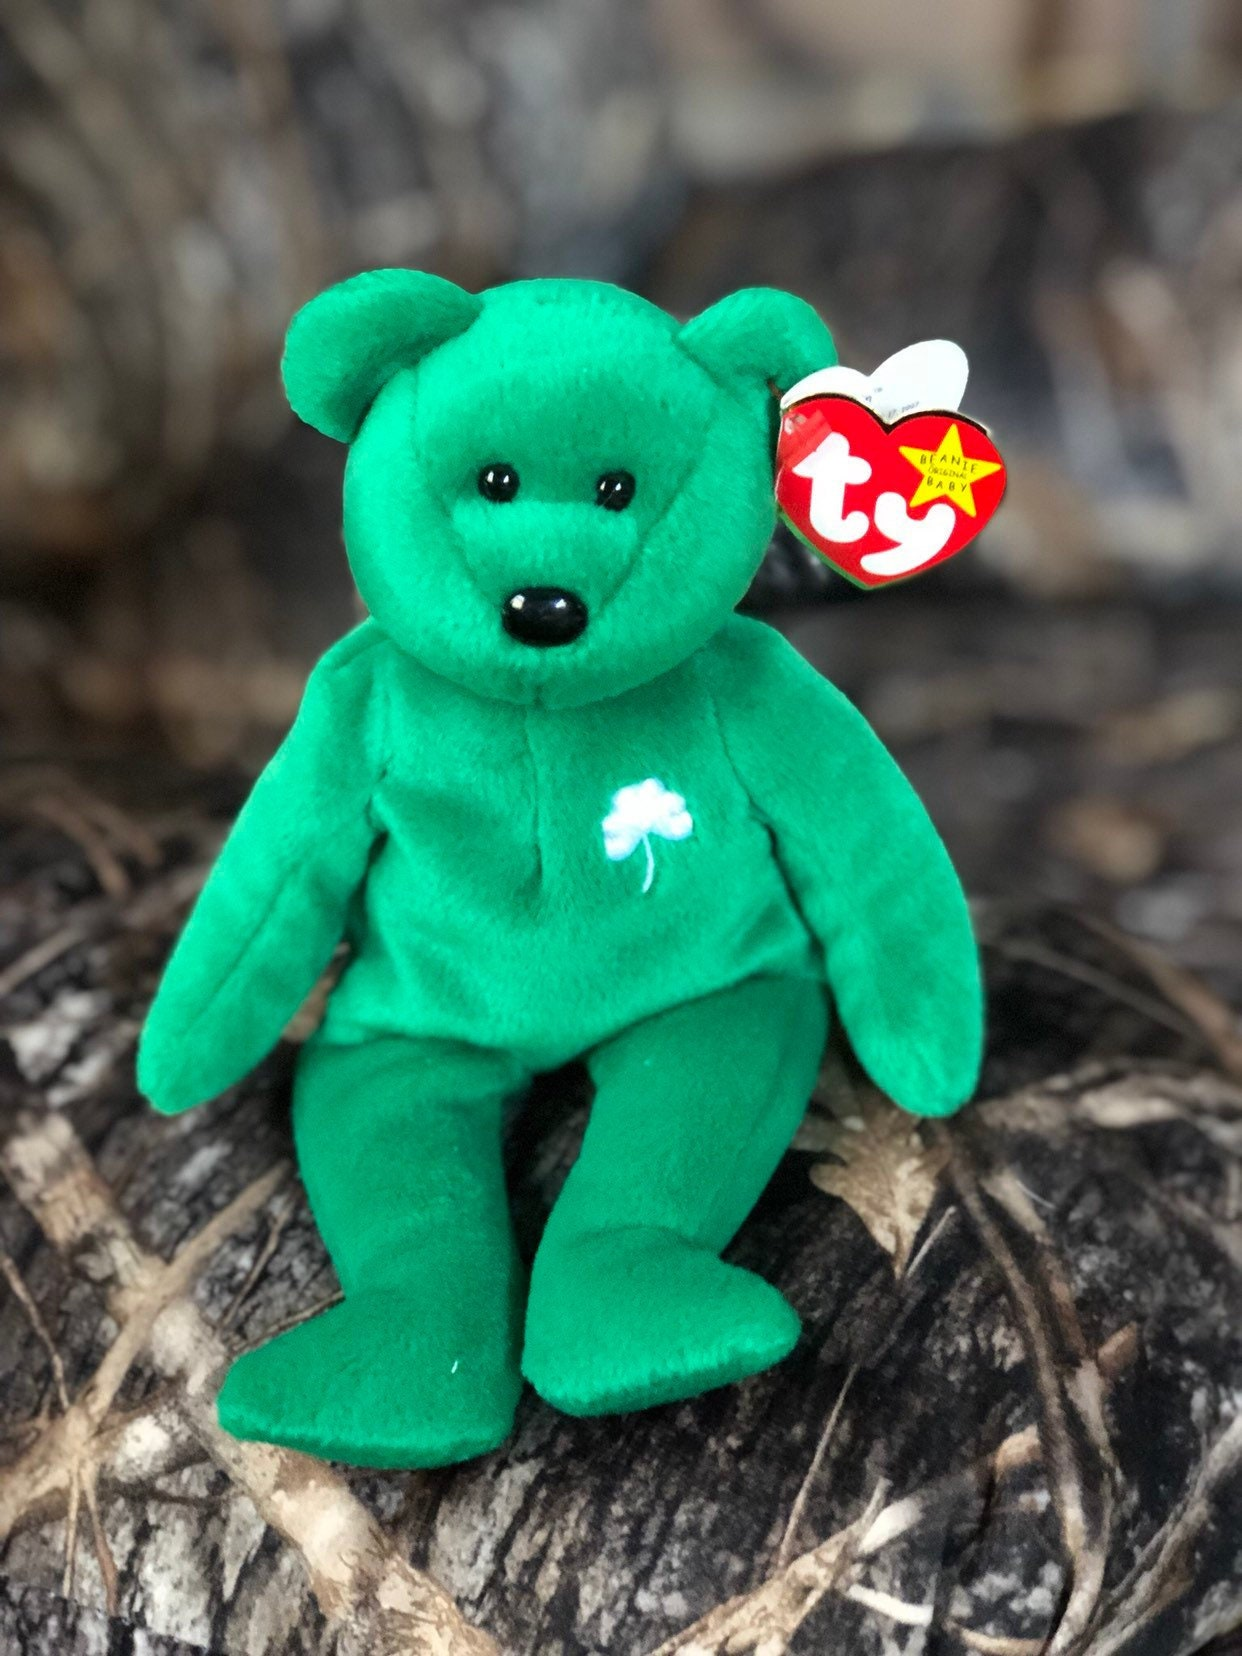 bbdbde95eaf Shamrock Beanie Baby Bear - Green St. Patrick s Day Irish Decoration